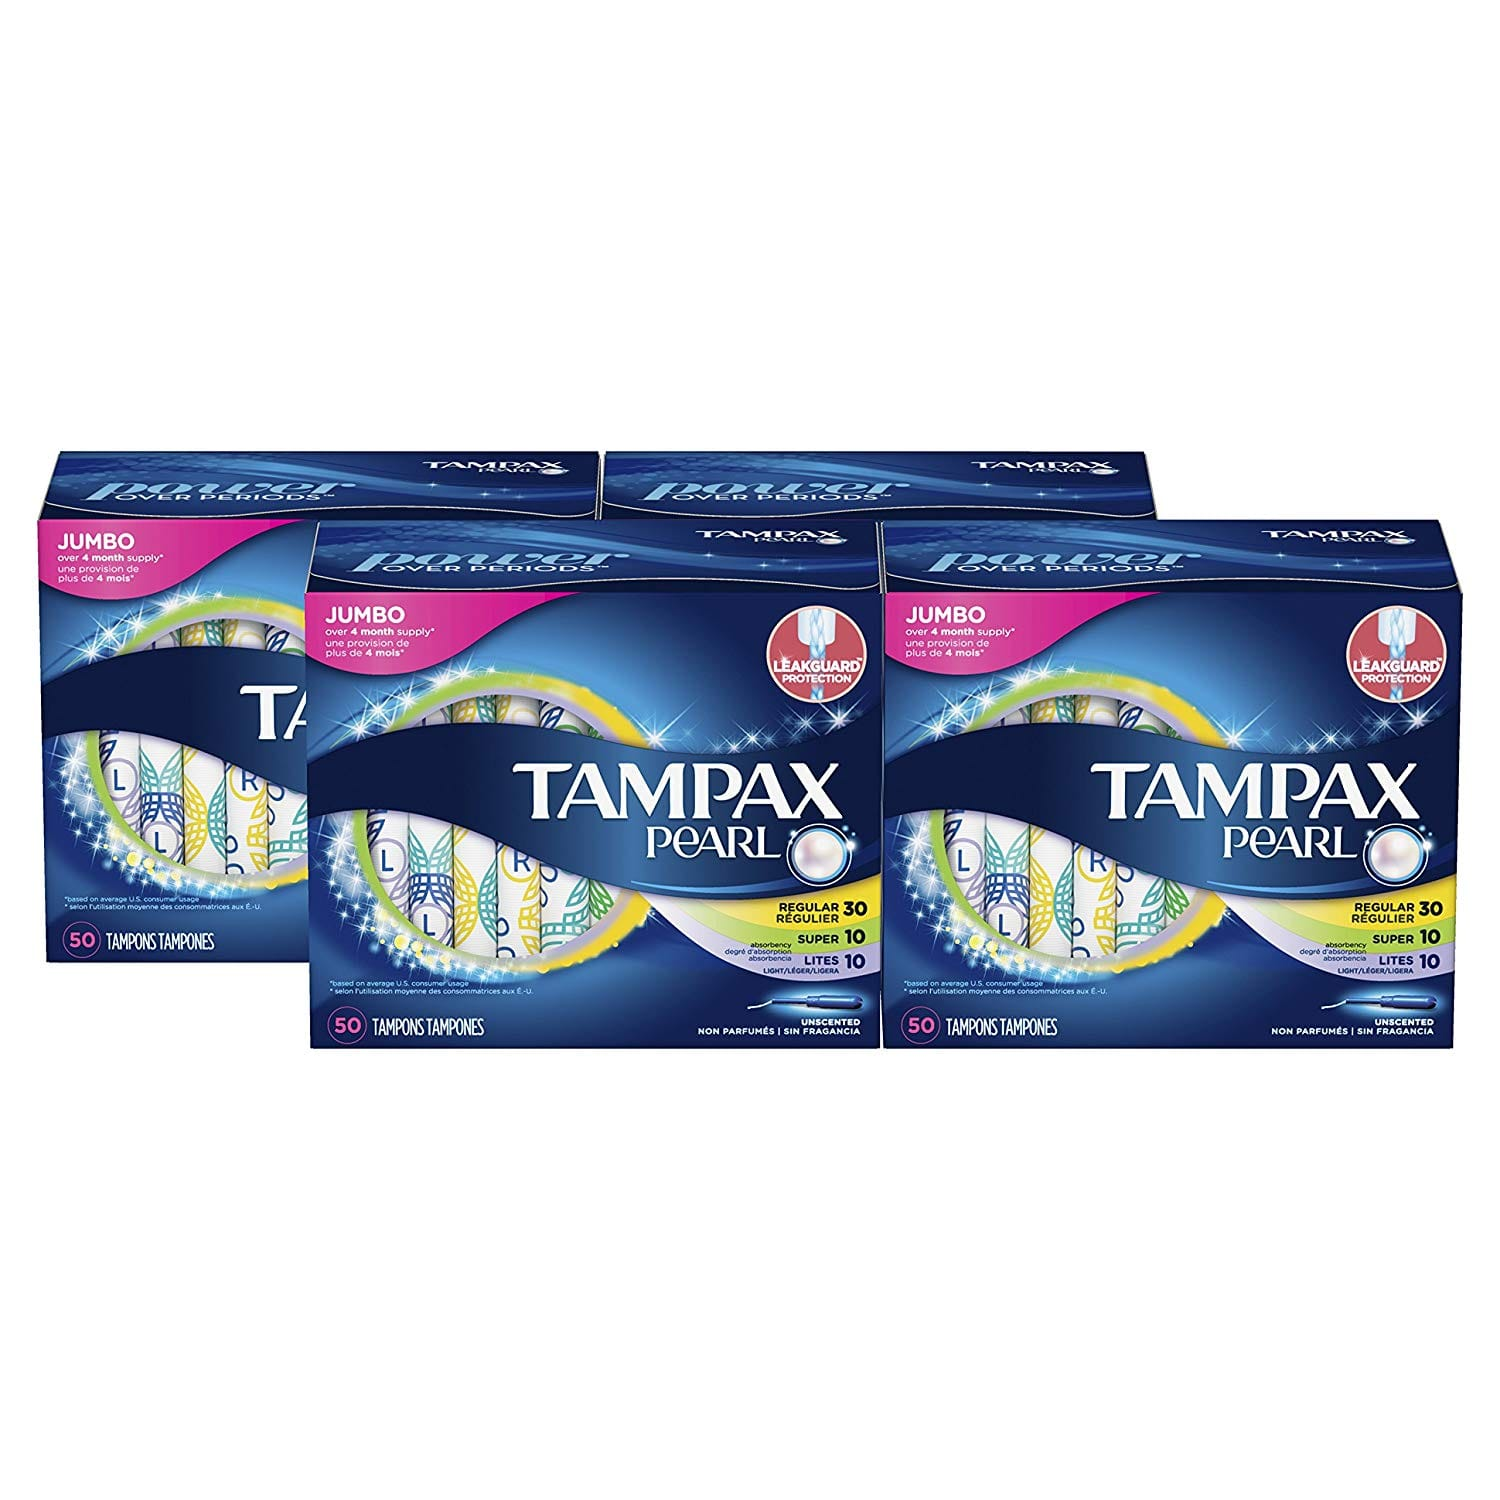 144-Ct Tampax Pocket Pearl (Regular Absorbency, Unscented) $22.56, 200-Ct Tamapx Pearl Plastic Tampons (Multipack, Unscented) $31.68 & More w/ S&S + Free S&H